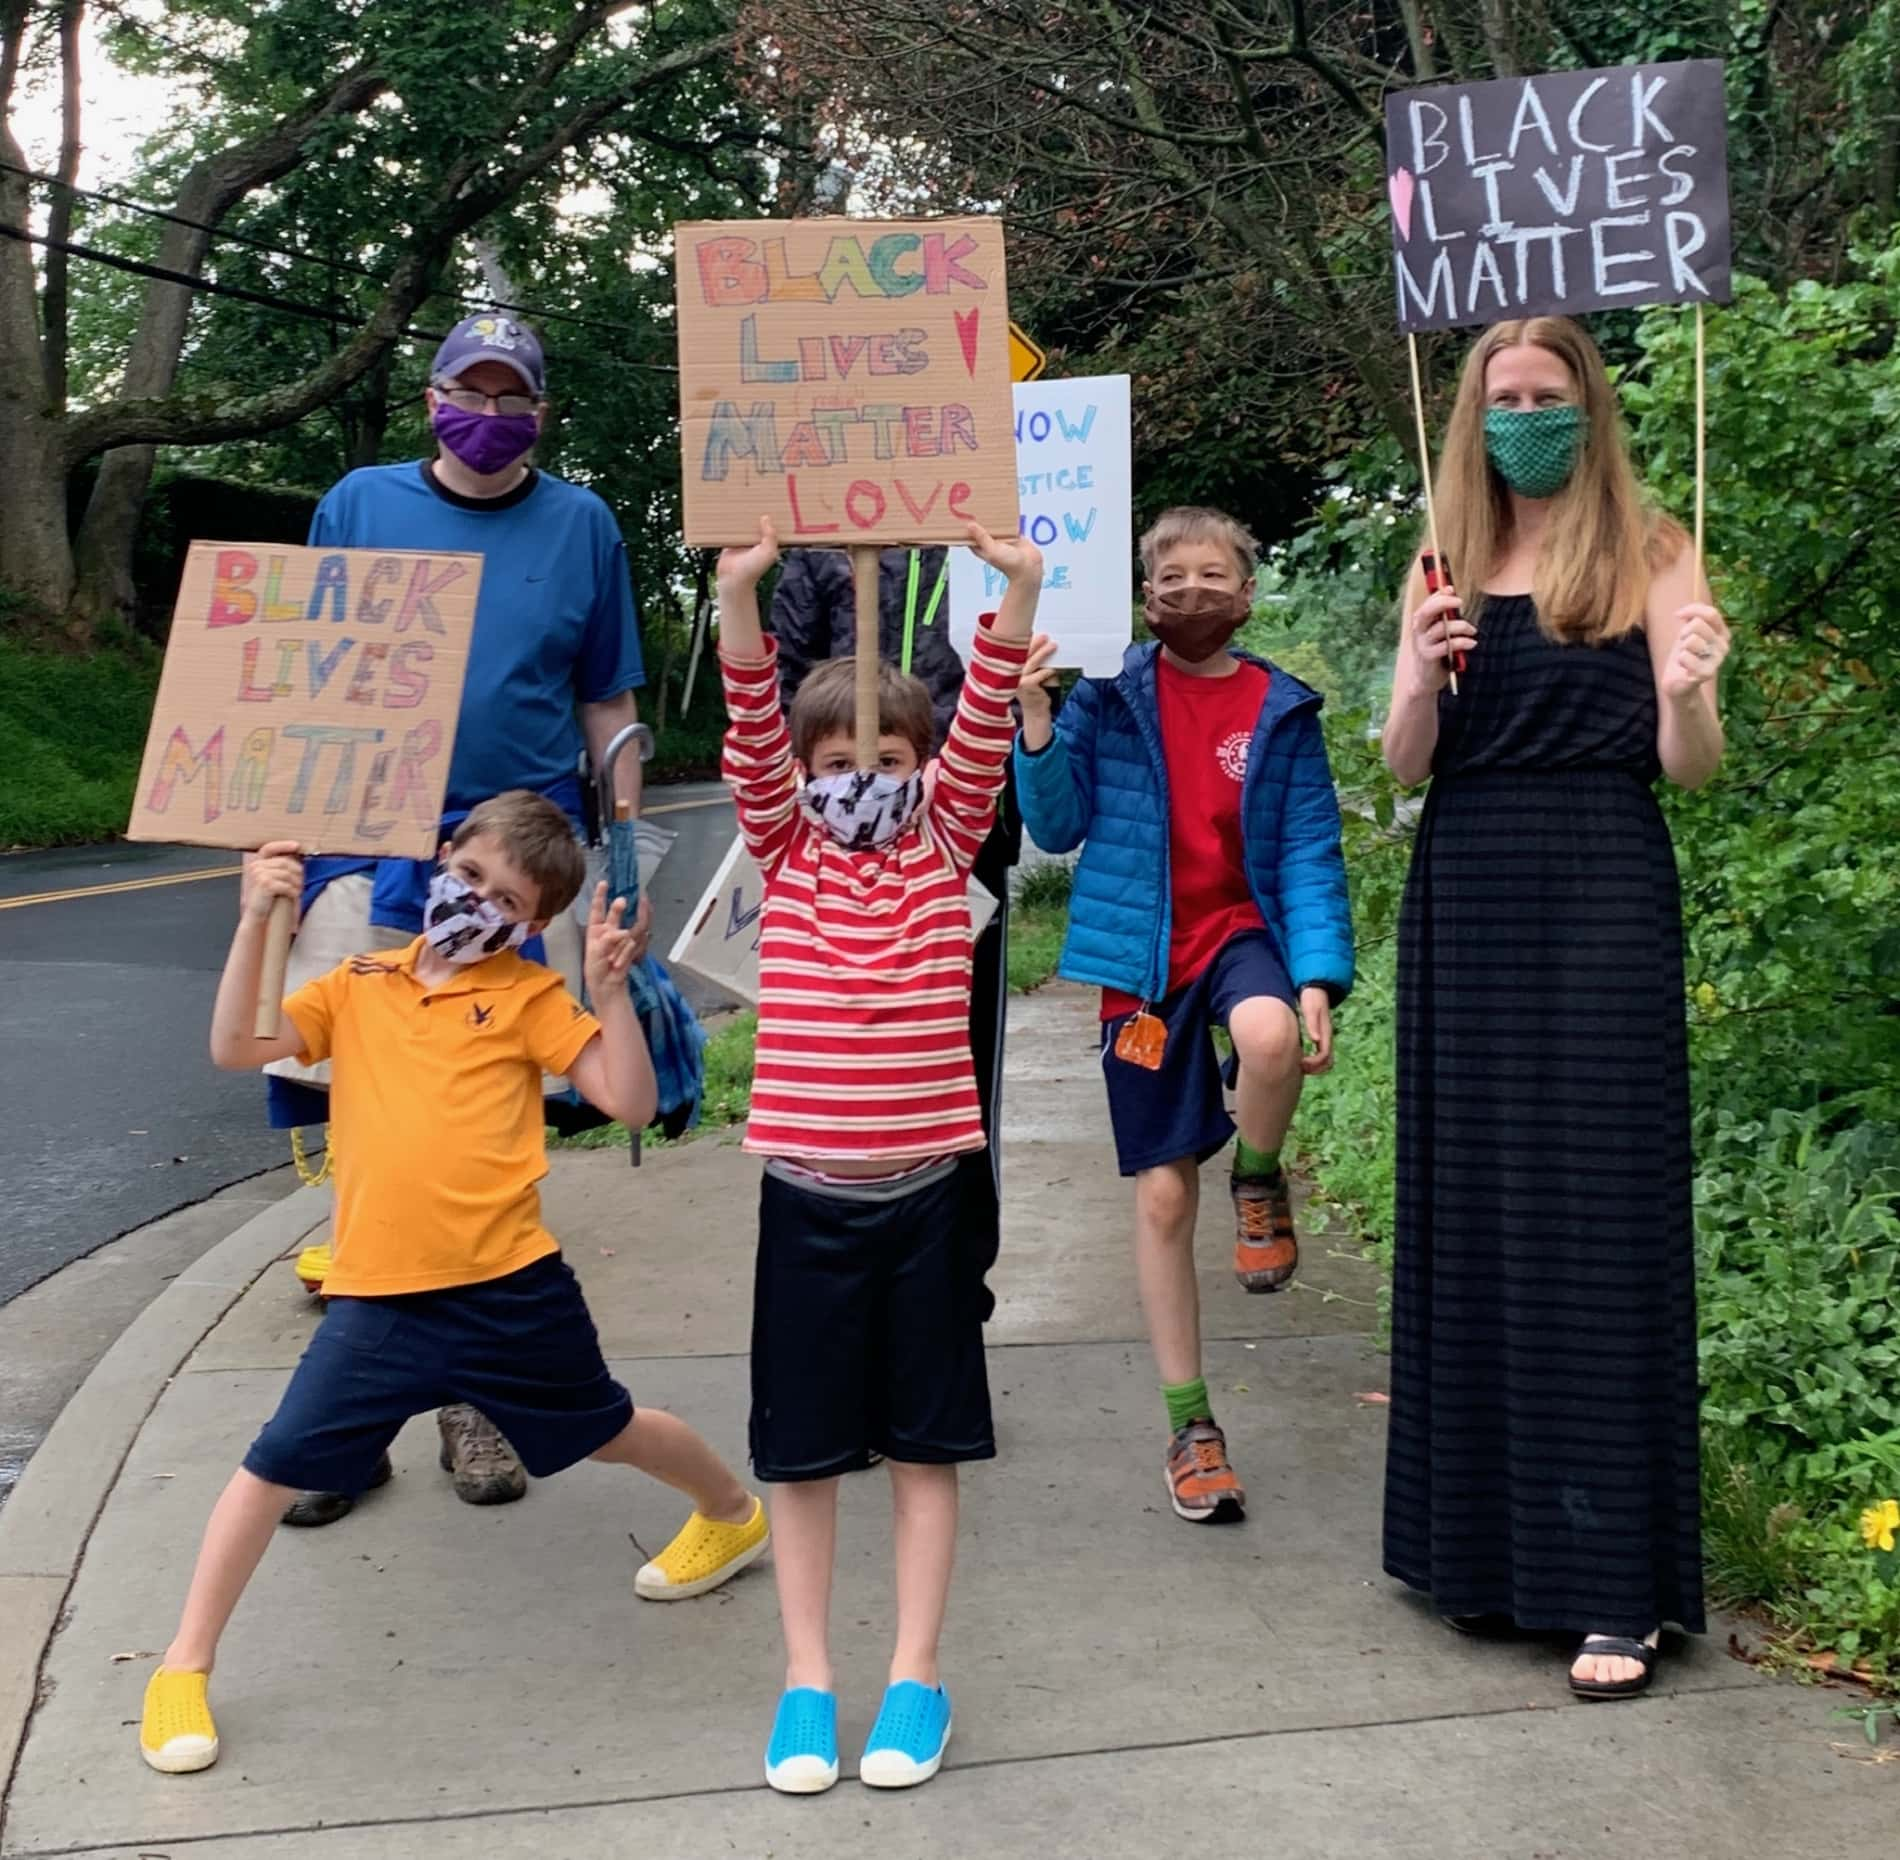 A family of five hold Black Lives Matter posters